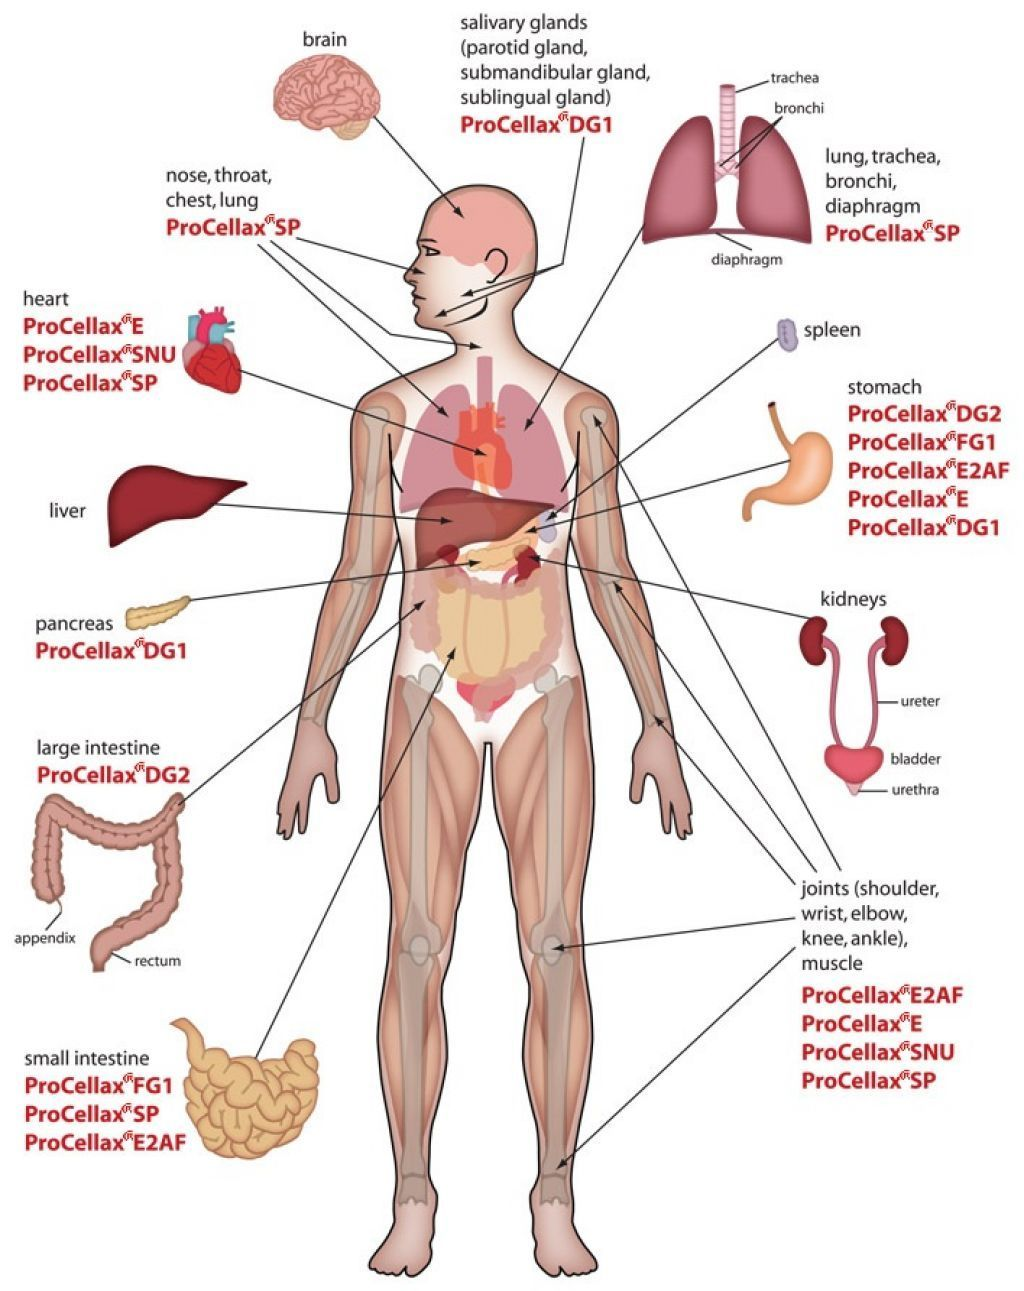 Picture Of The Human Organs Human Anatomy Organs Human Body